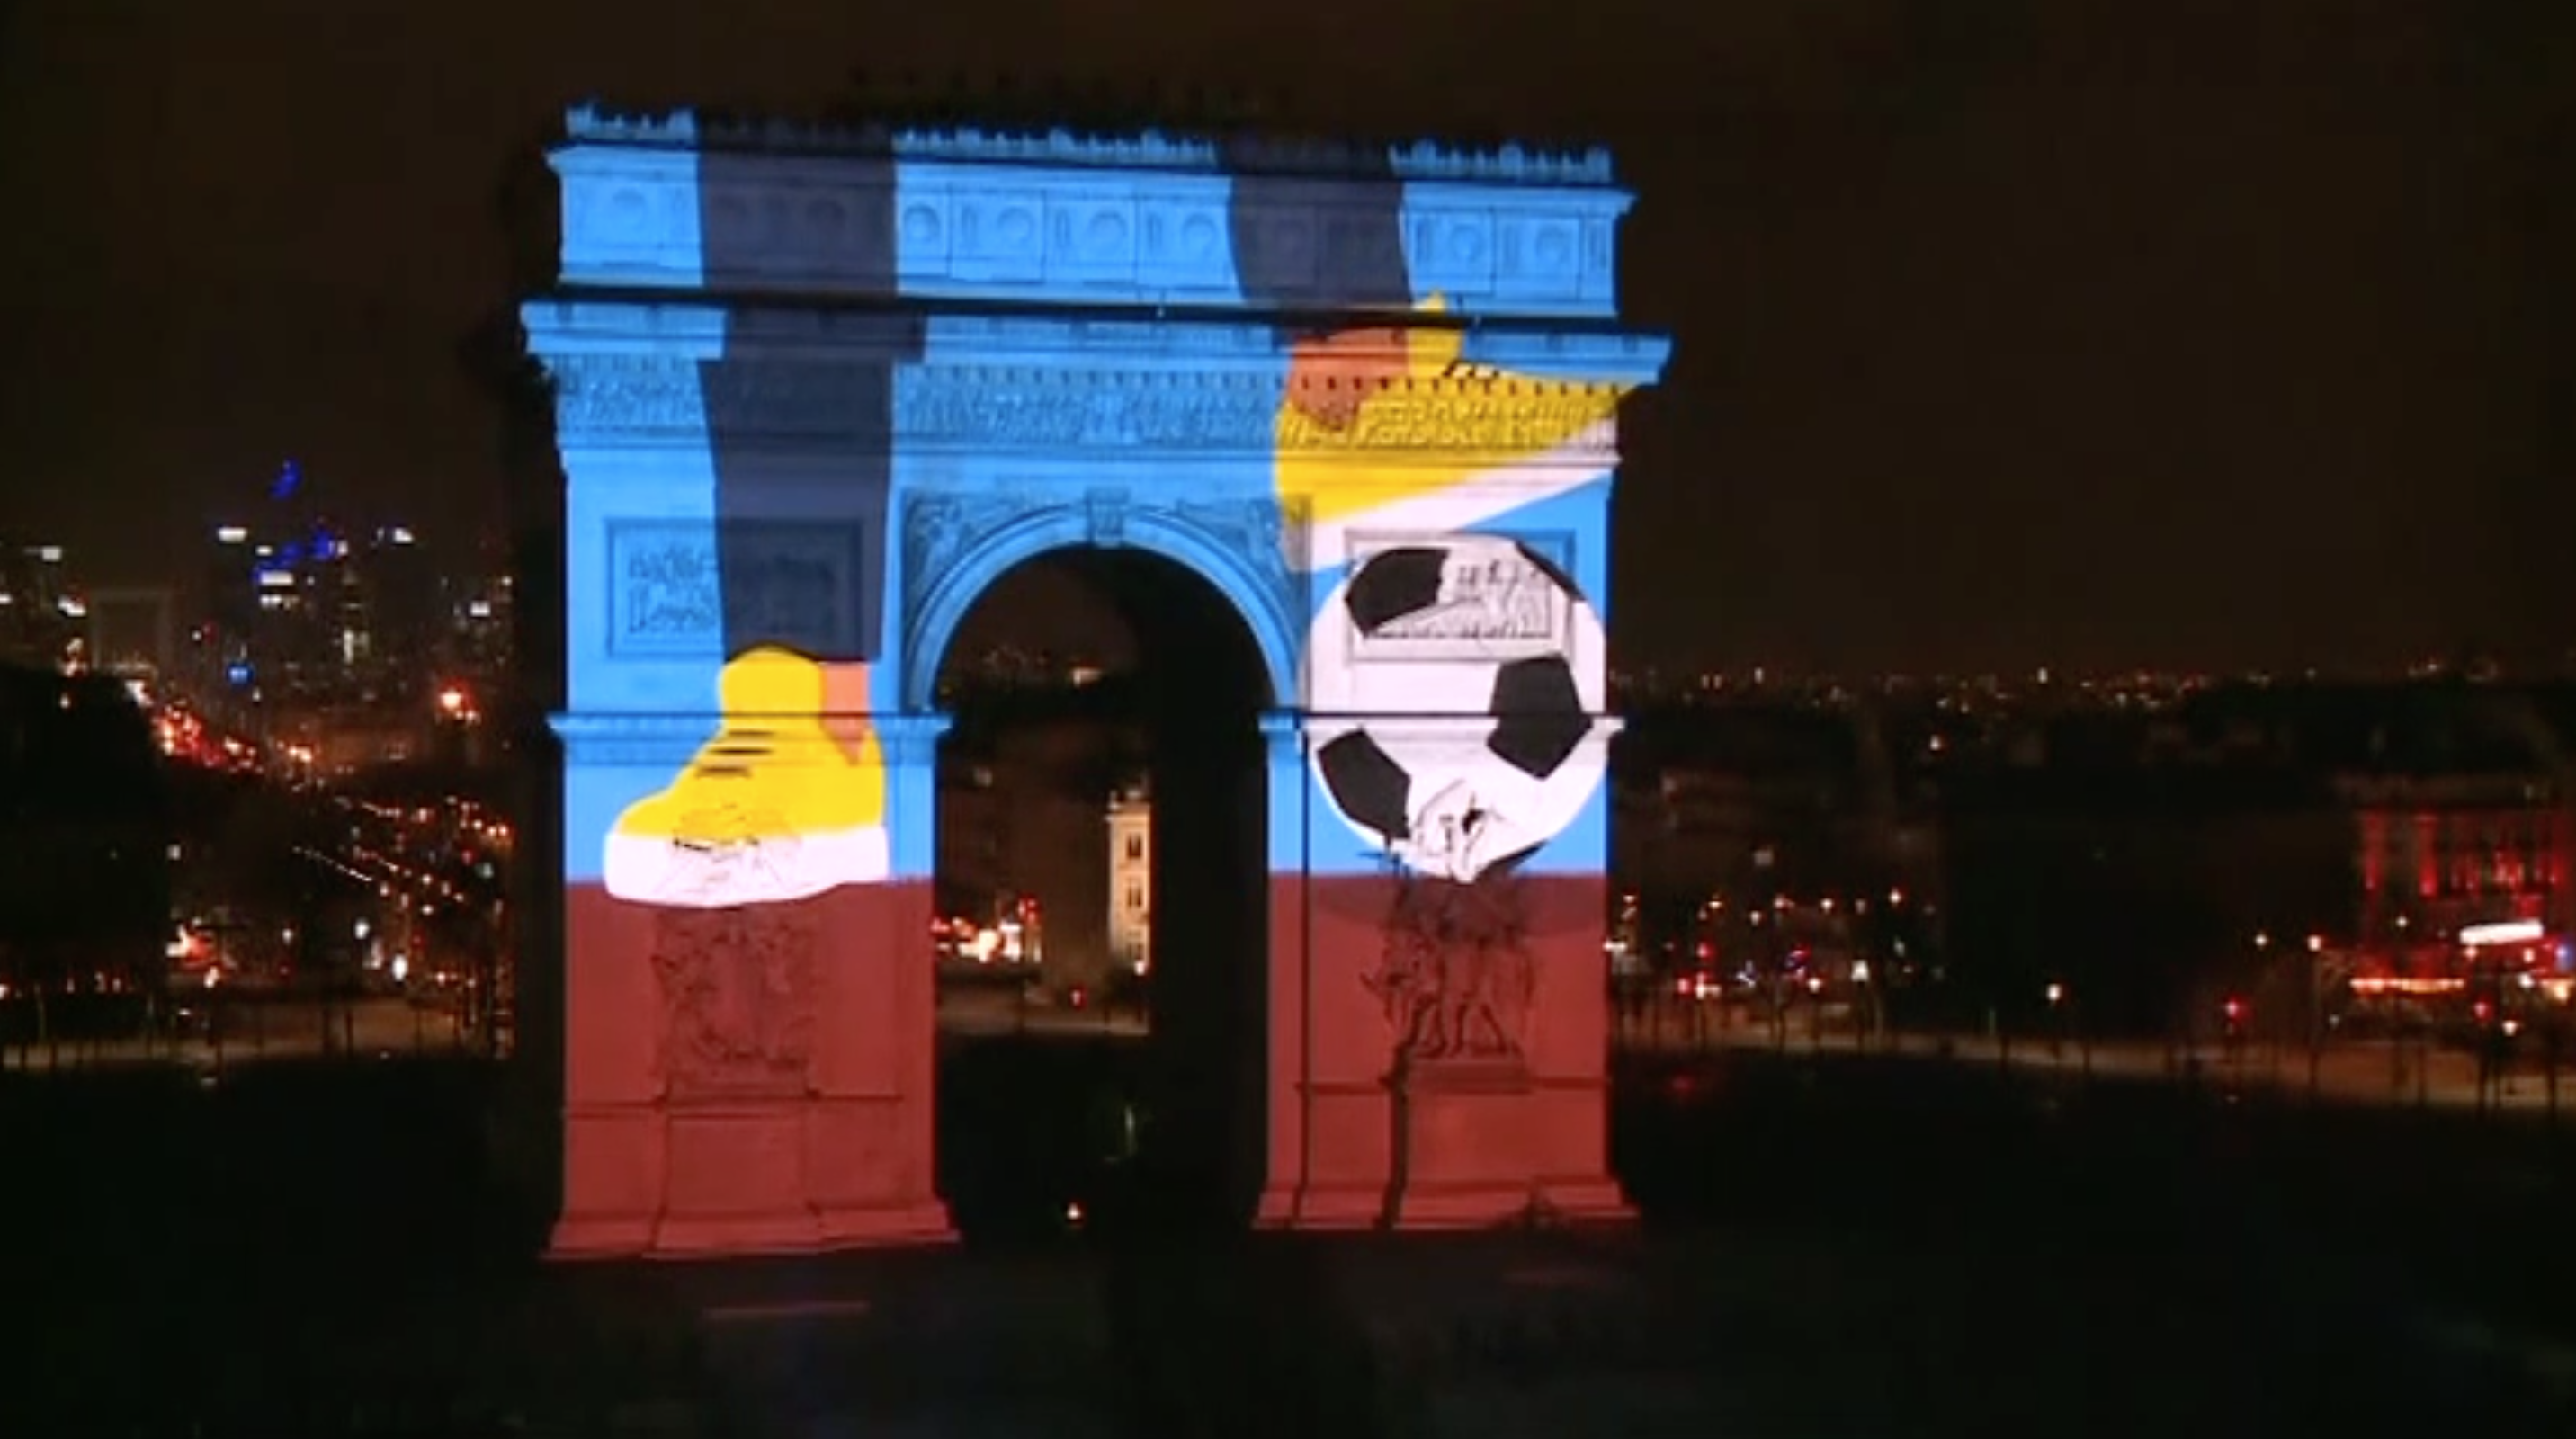 LIVE: France brings in the New Year with celebrations in Paris (CNN Newsource)